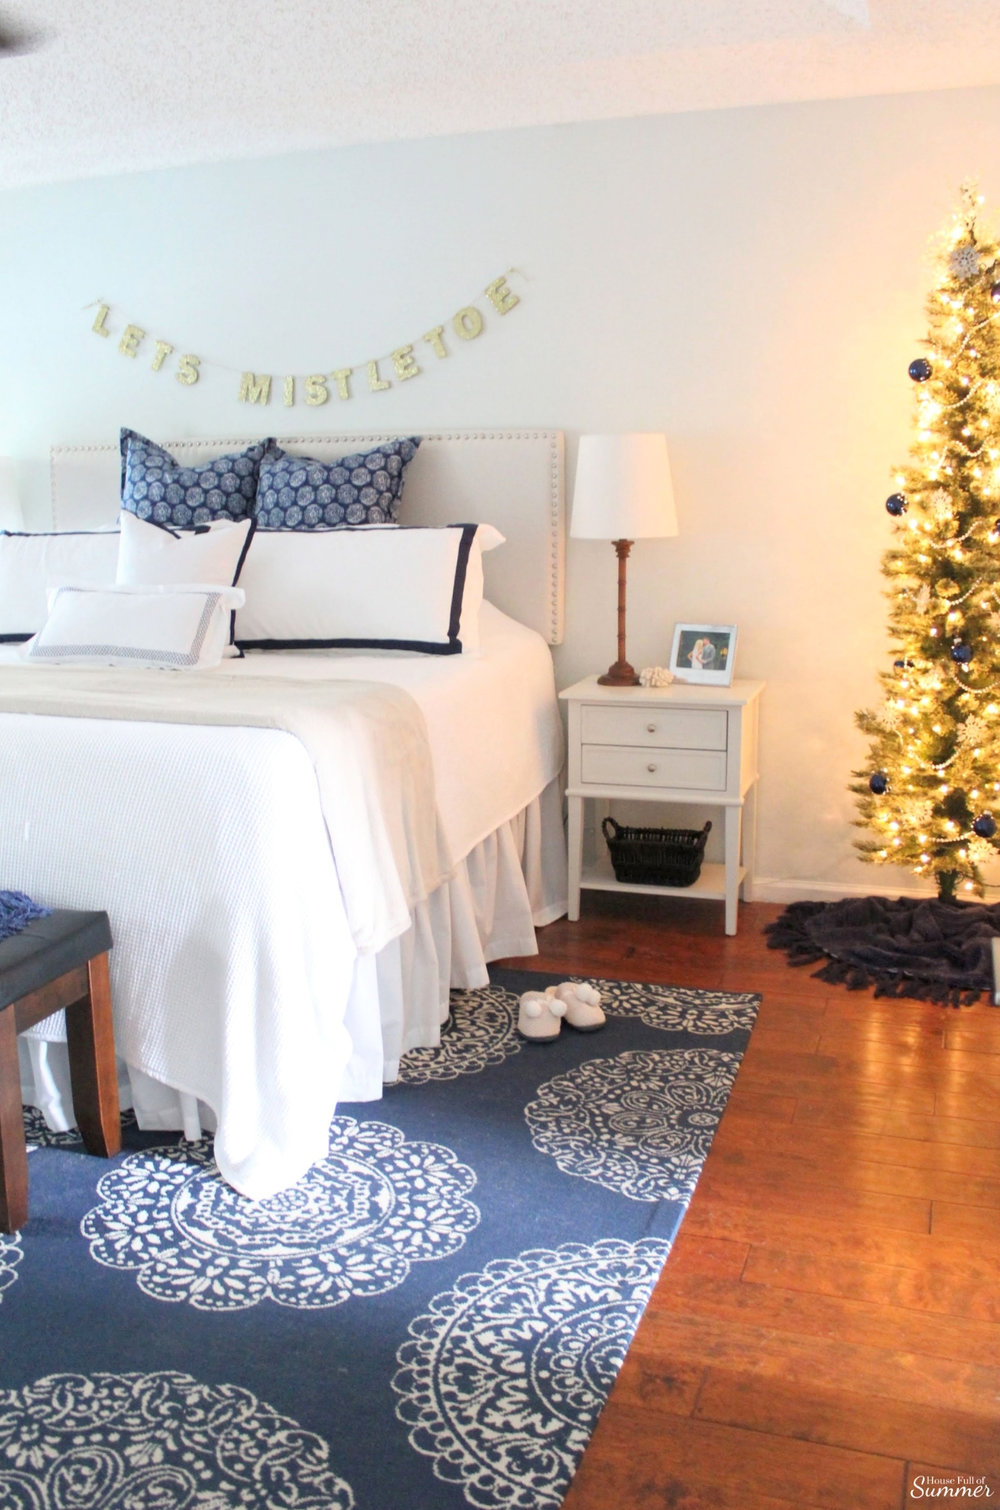 A Charming Southern Christmas Home Tour {Part 2} | House Full of Summer - Master Bedroom Christmas decor ideas, navy Christmas decorations, blue and white holiday decor, foyer, Gold Magnolias and Southern influences in Christmas decor, neutral Christmas decorating, foyer, living room, Christmas centerpiece, greenery, DIY holiday arrangement, coastal decor, Southern Christmas tree ornament ideas tassel ornaments, Christmas garland, bedroom Christmas Tree